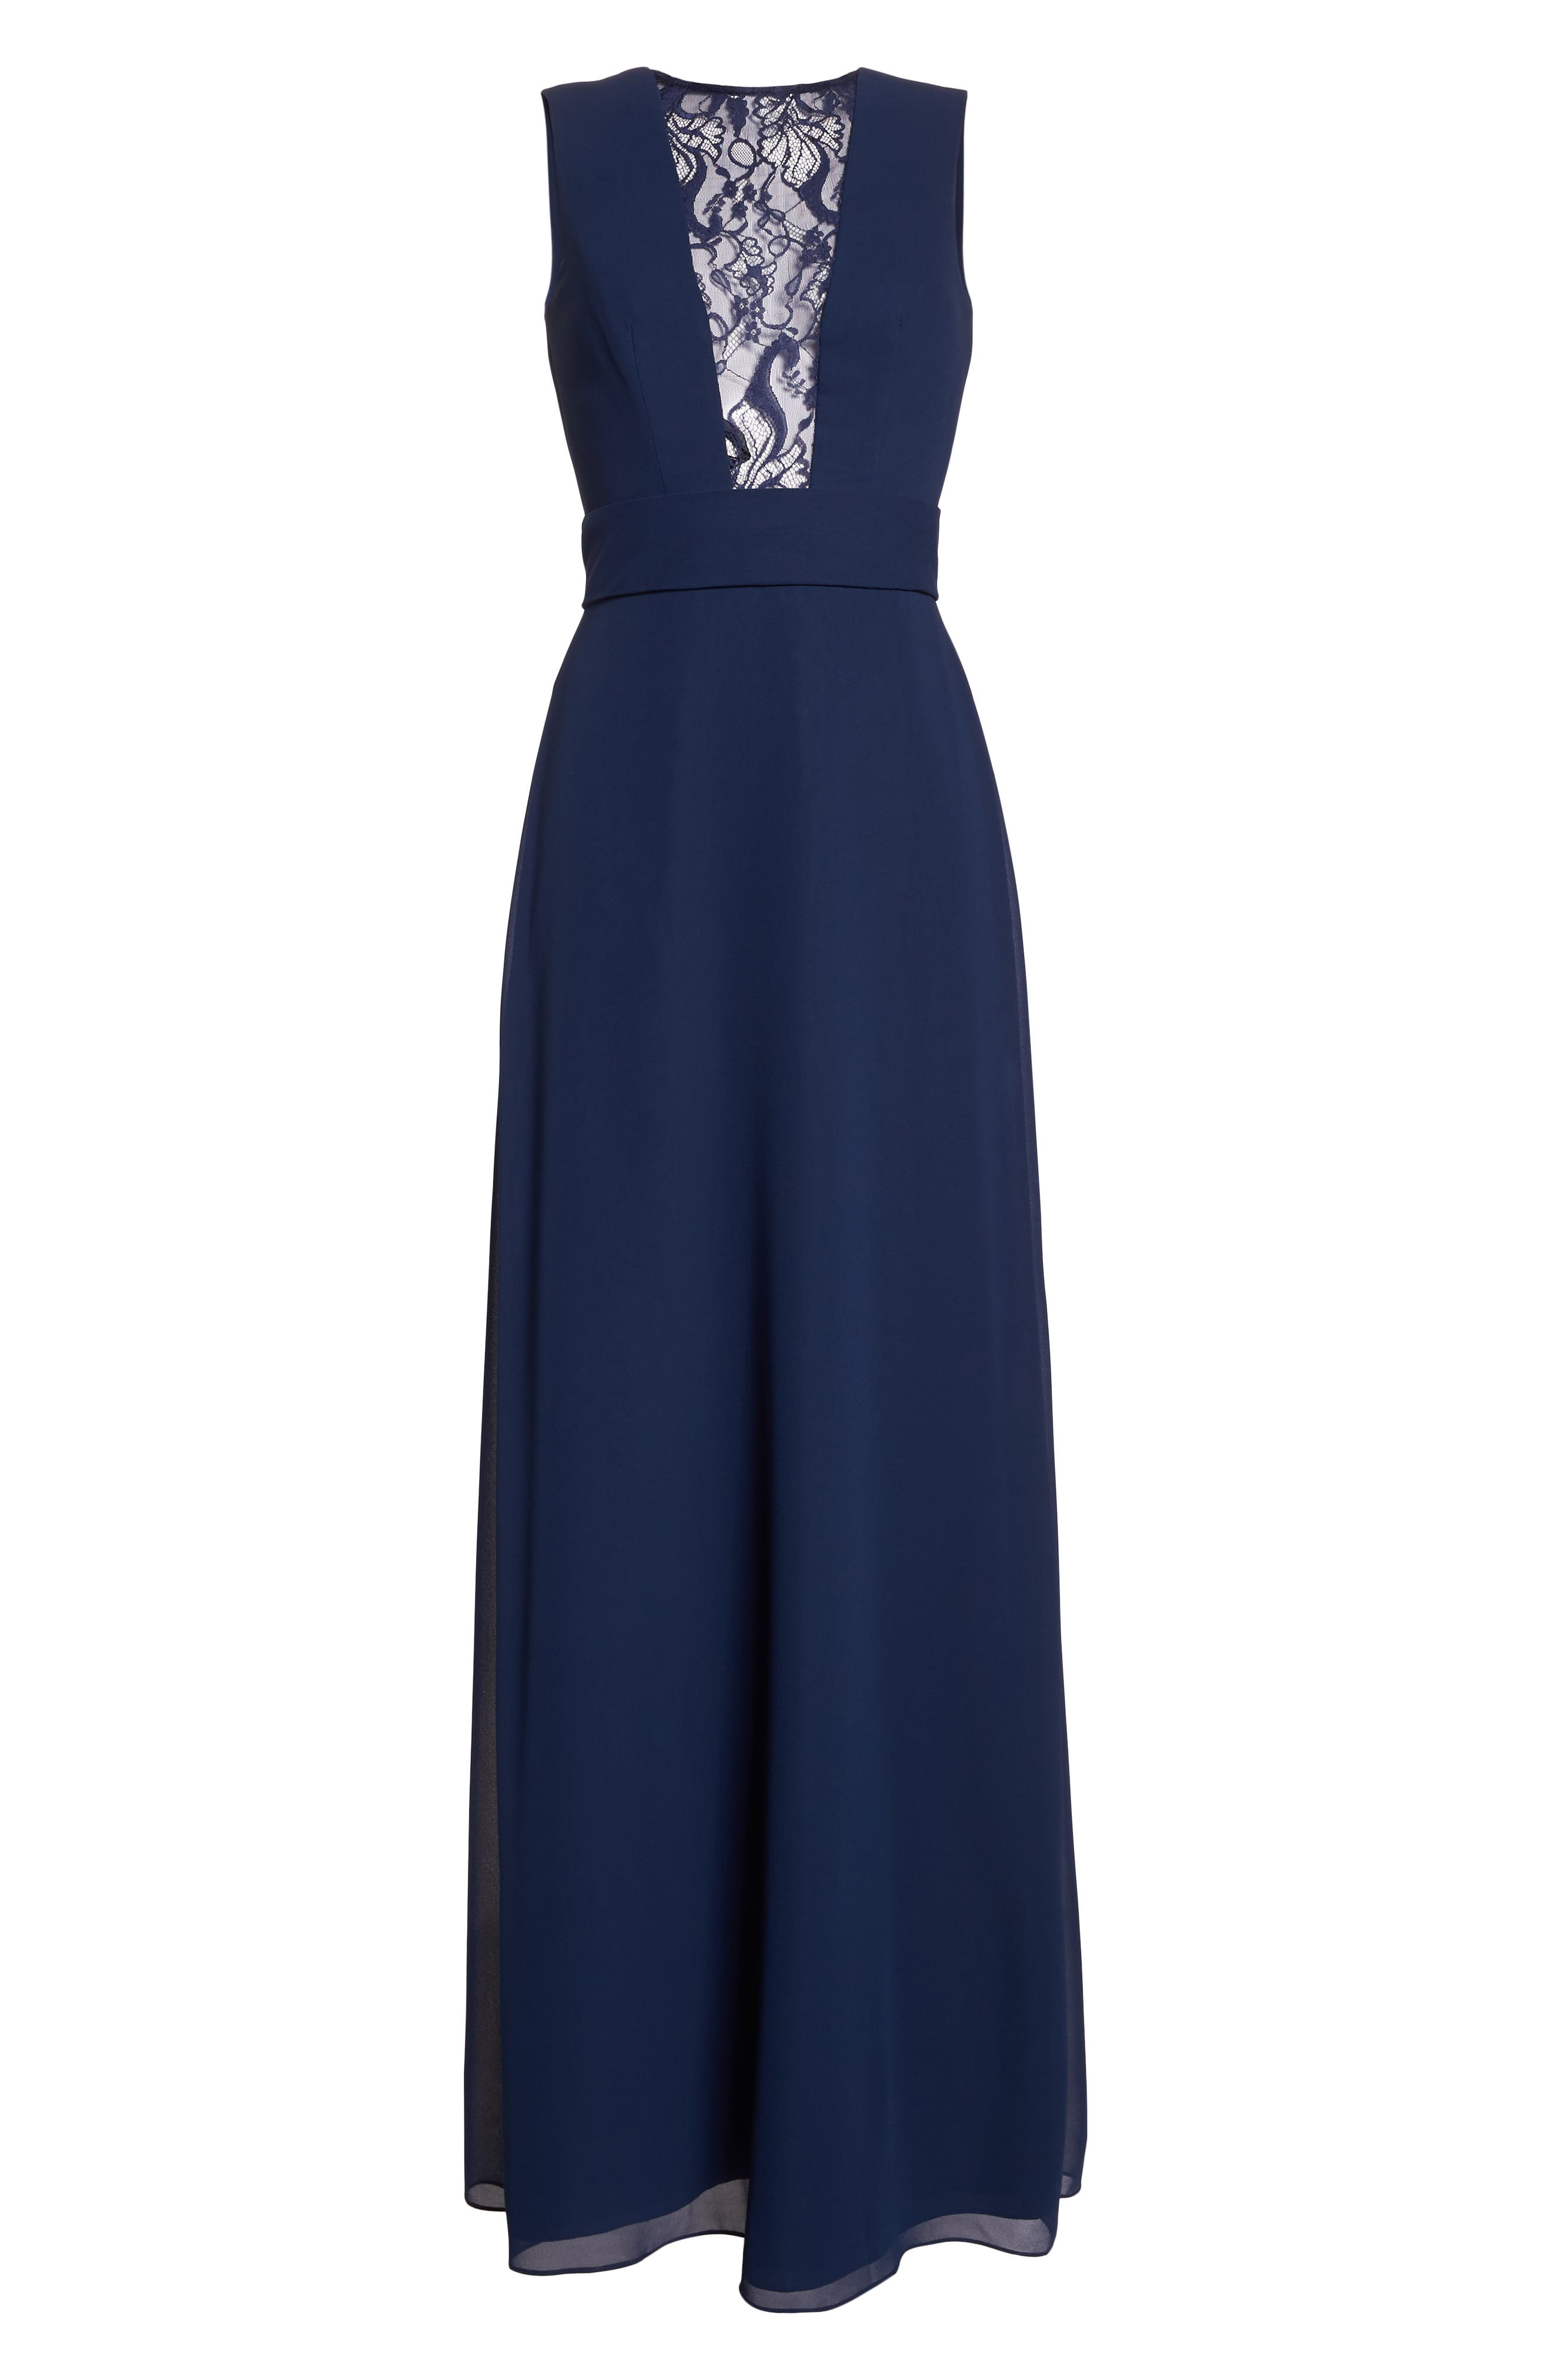 HAYLEY PAIGE OCCASIONS,                             Lace Inset Chiffon Gown,                             Alternate thumbnail 7, color,                             NAVY